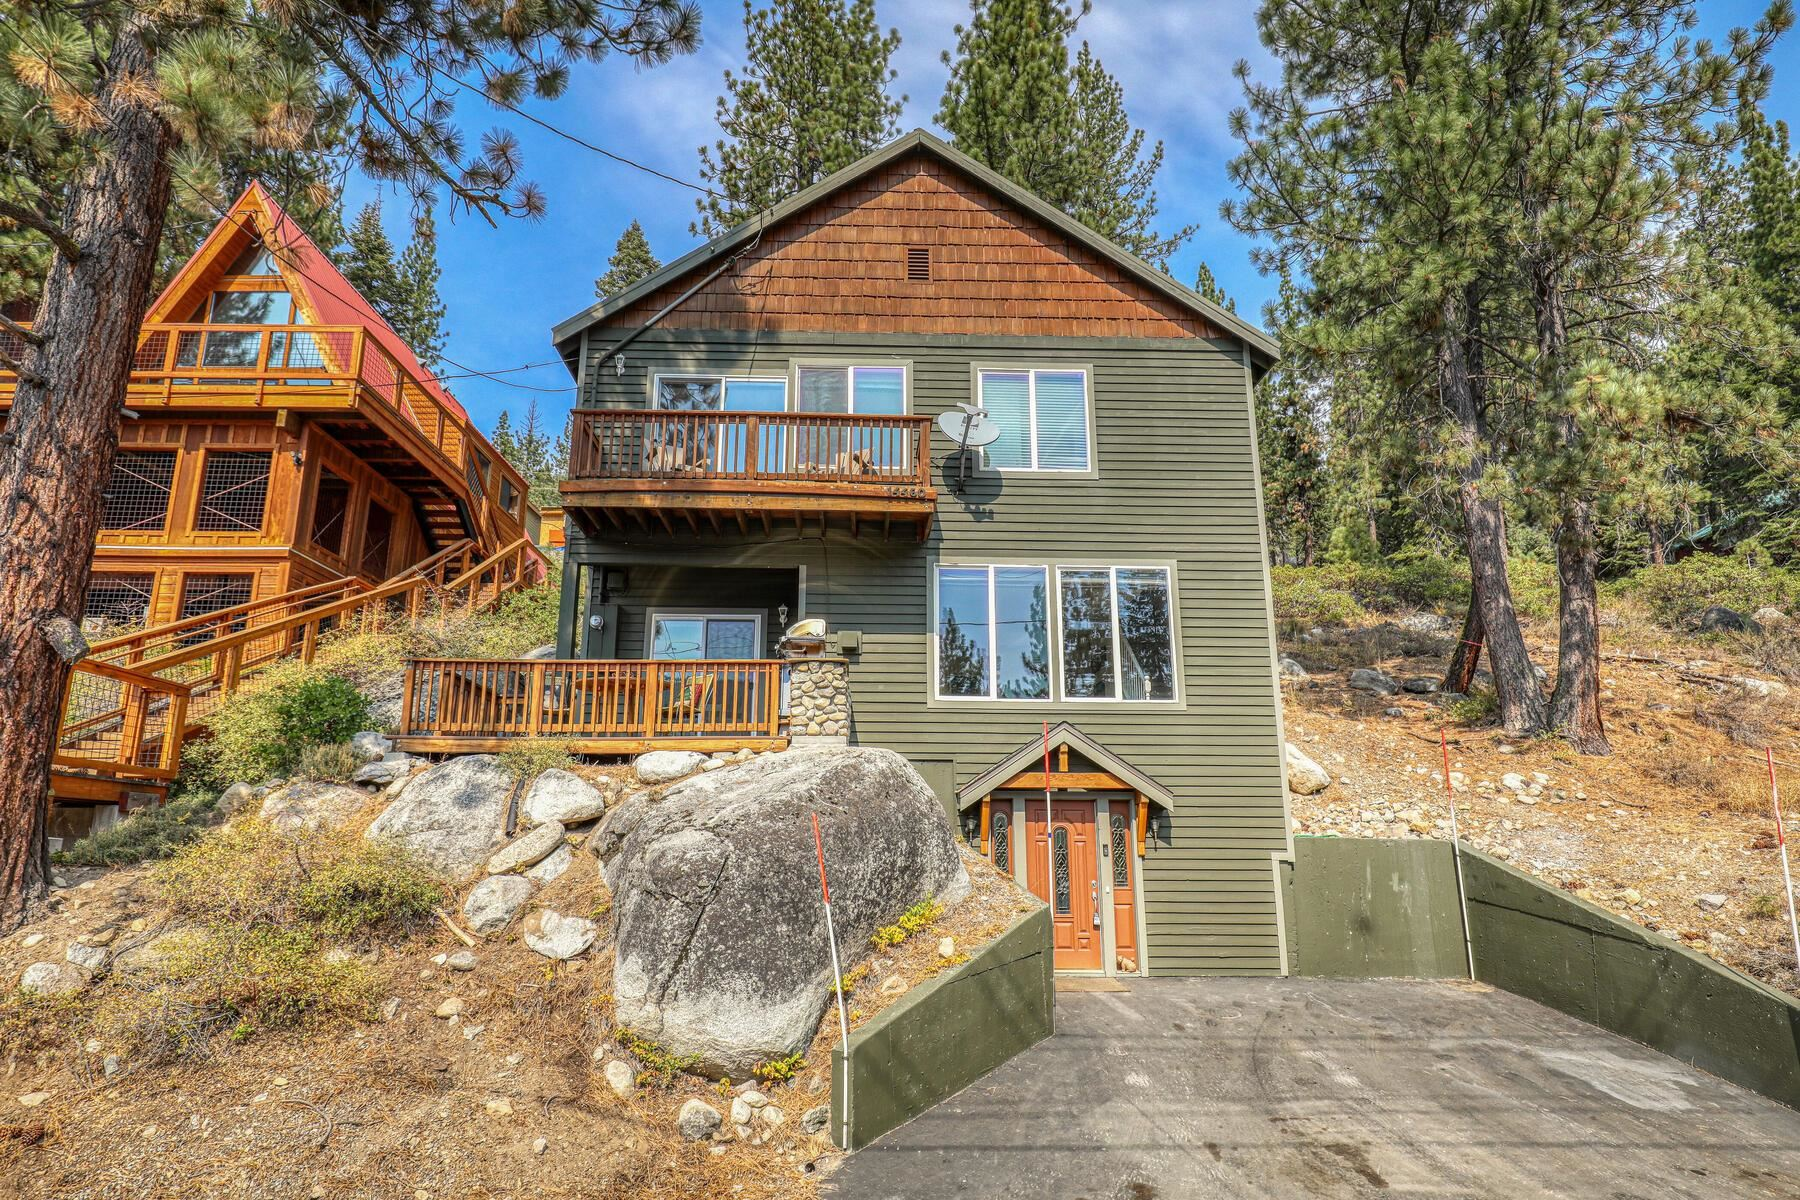 Image for 14460 E Reed Avenue, Truckee, CA 96161-3620